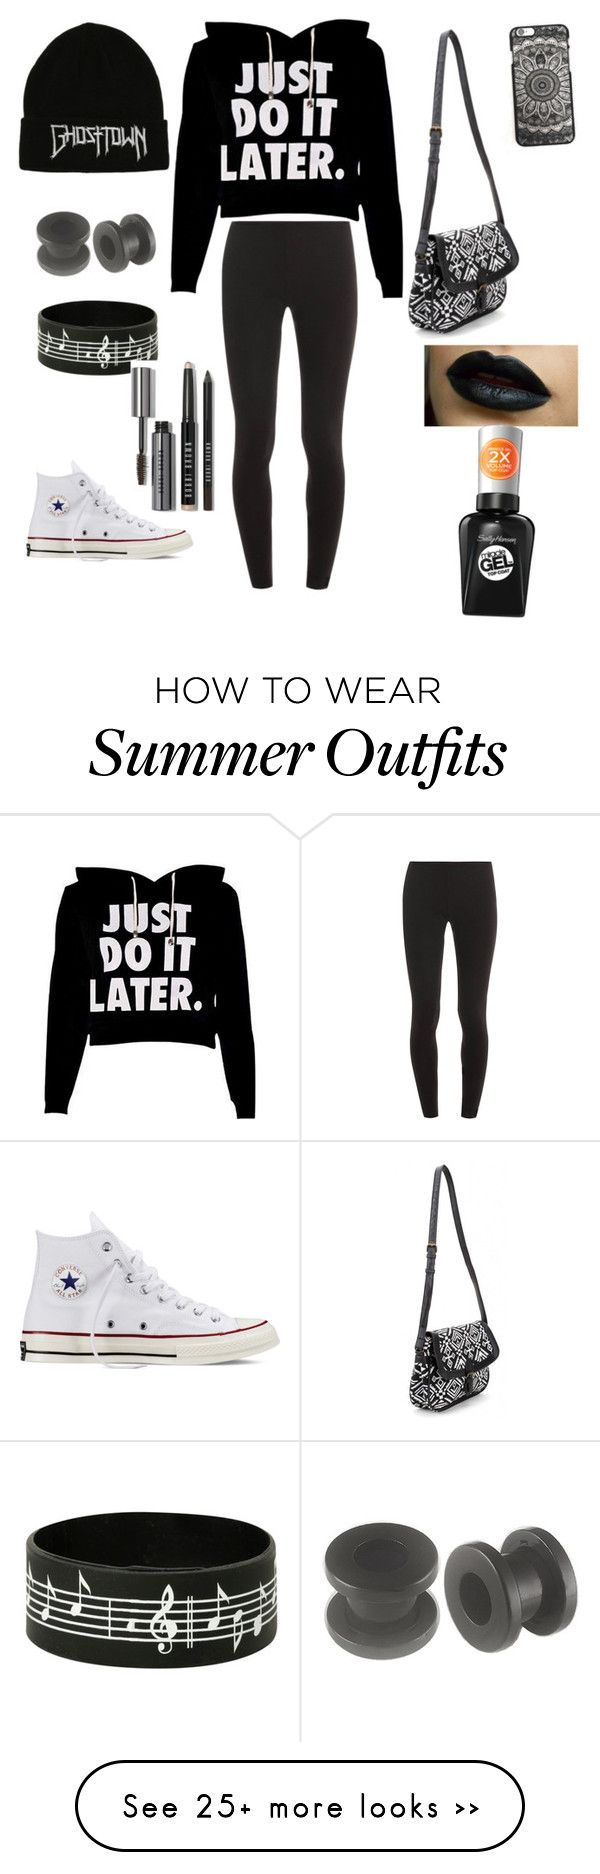 """Gens outfit"" by burgosgroup on Polyvore featuring Splendid, Converse, Sally Hansen and Bobbi Brown Cosmetics"